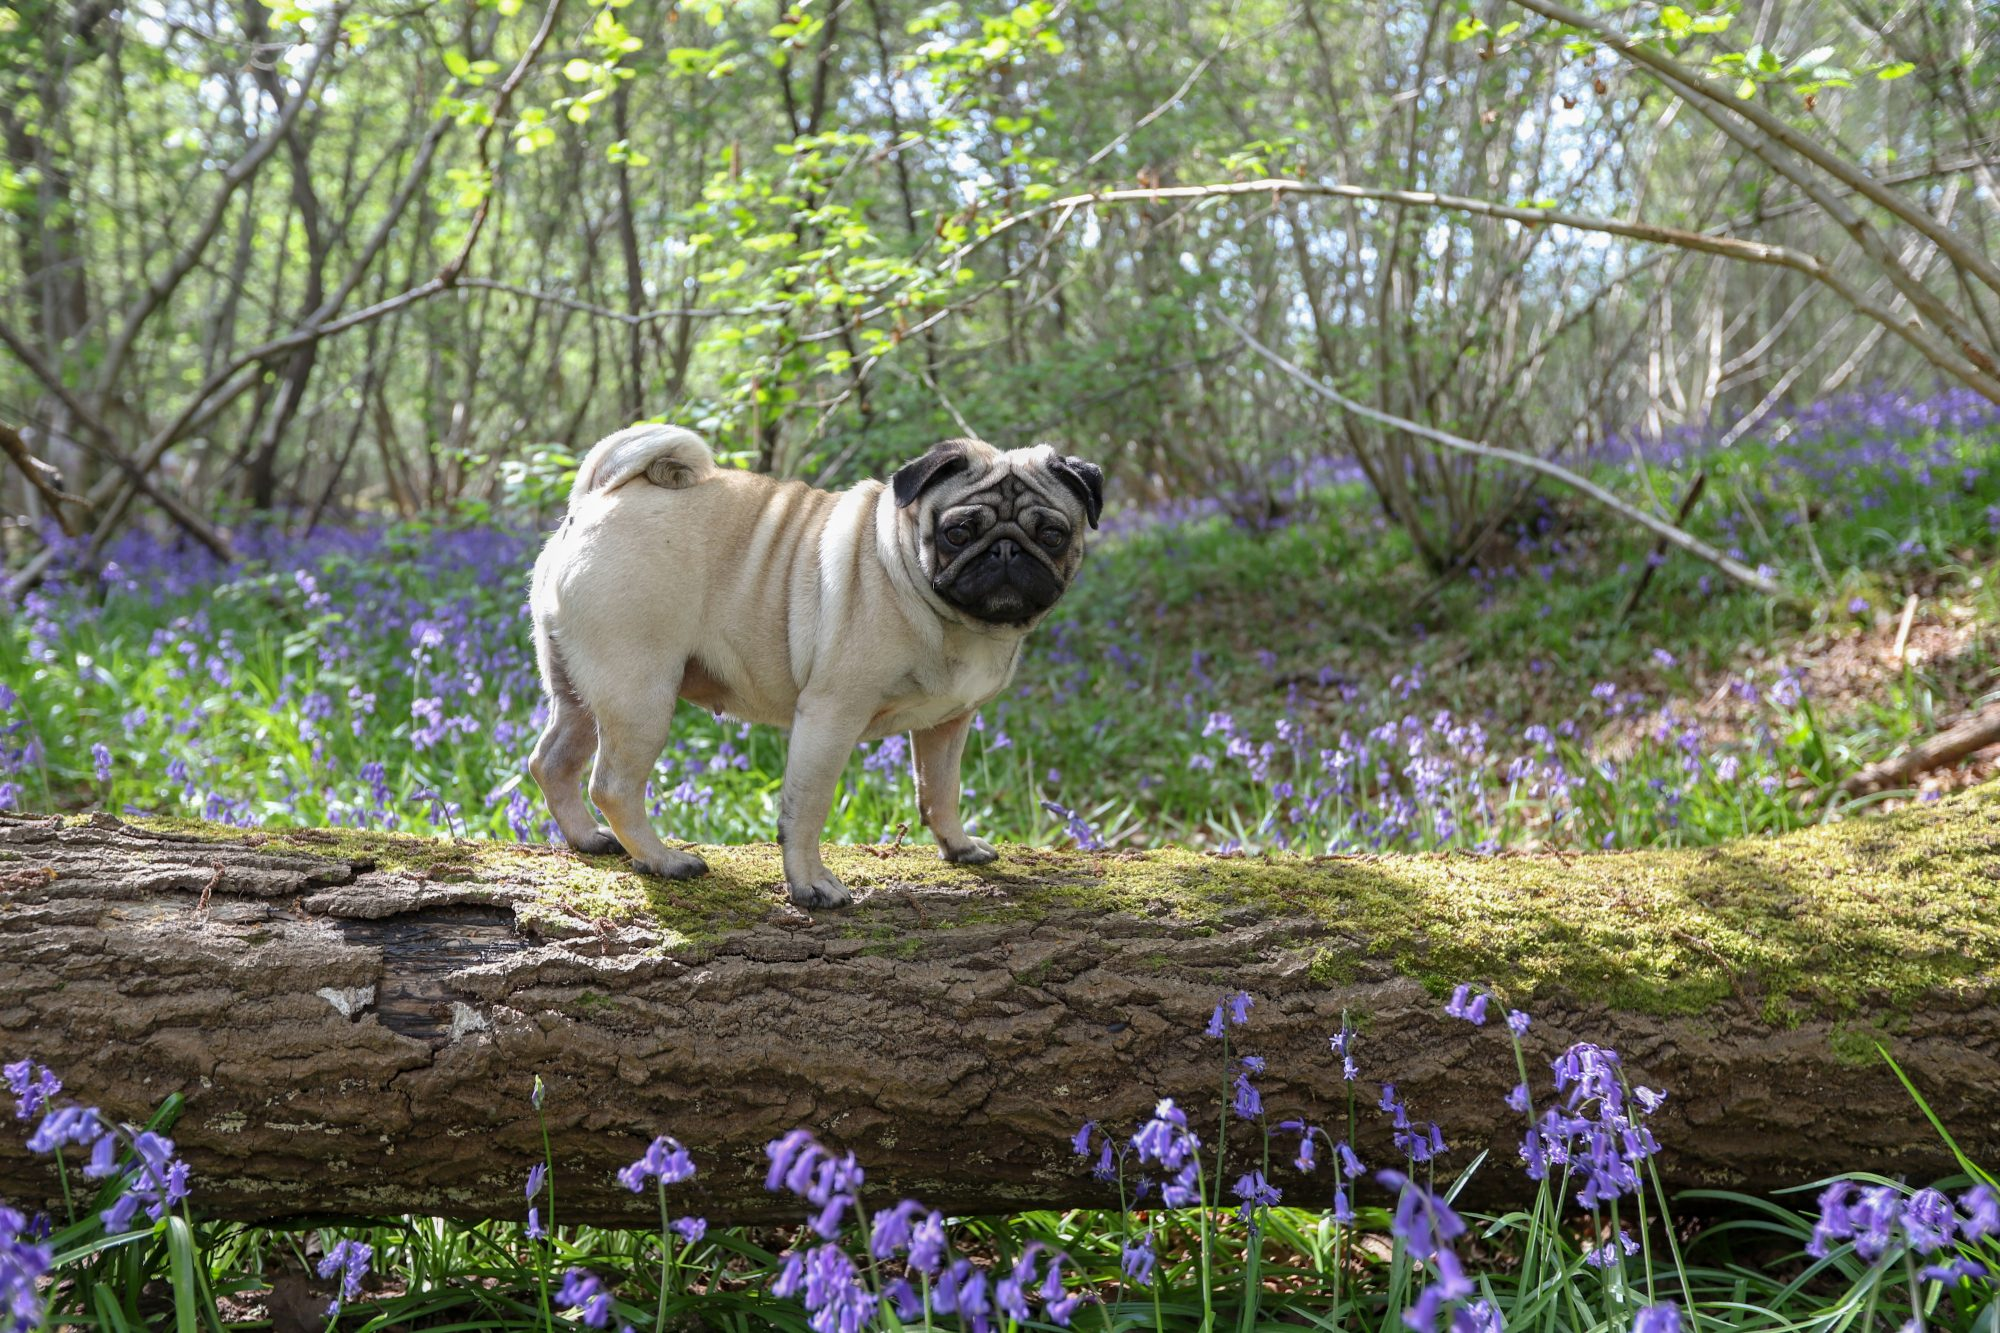 Pug Standing on Log in Forest